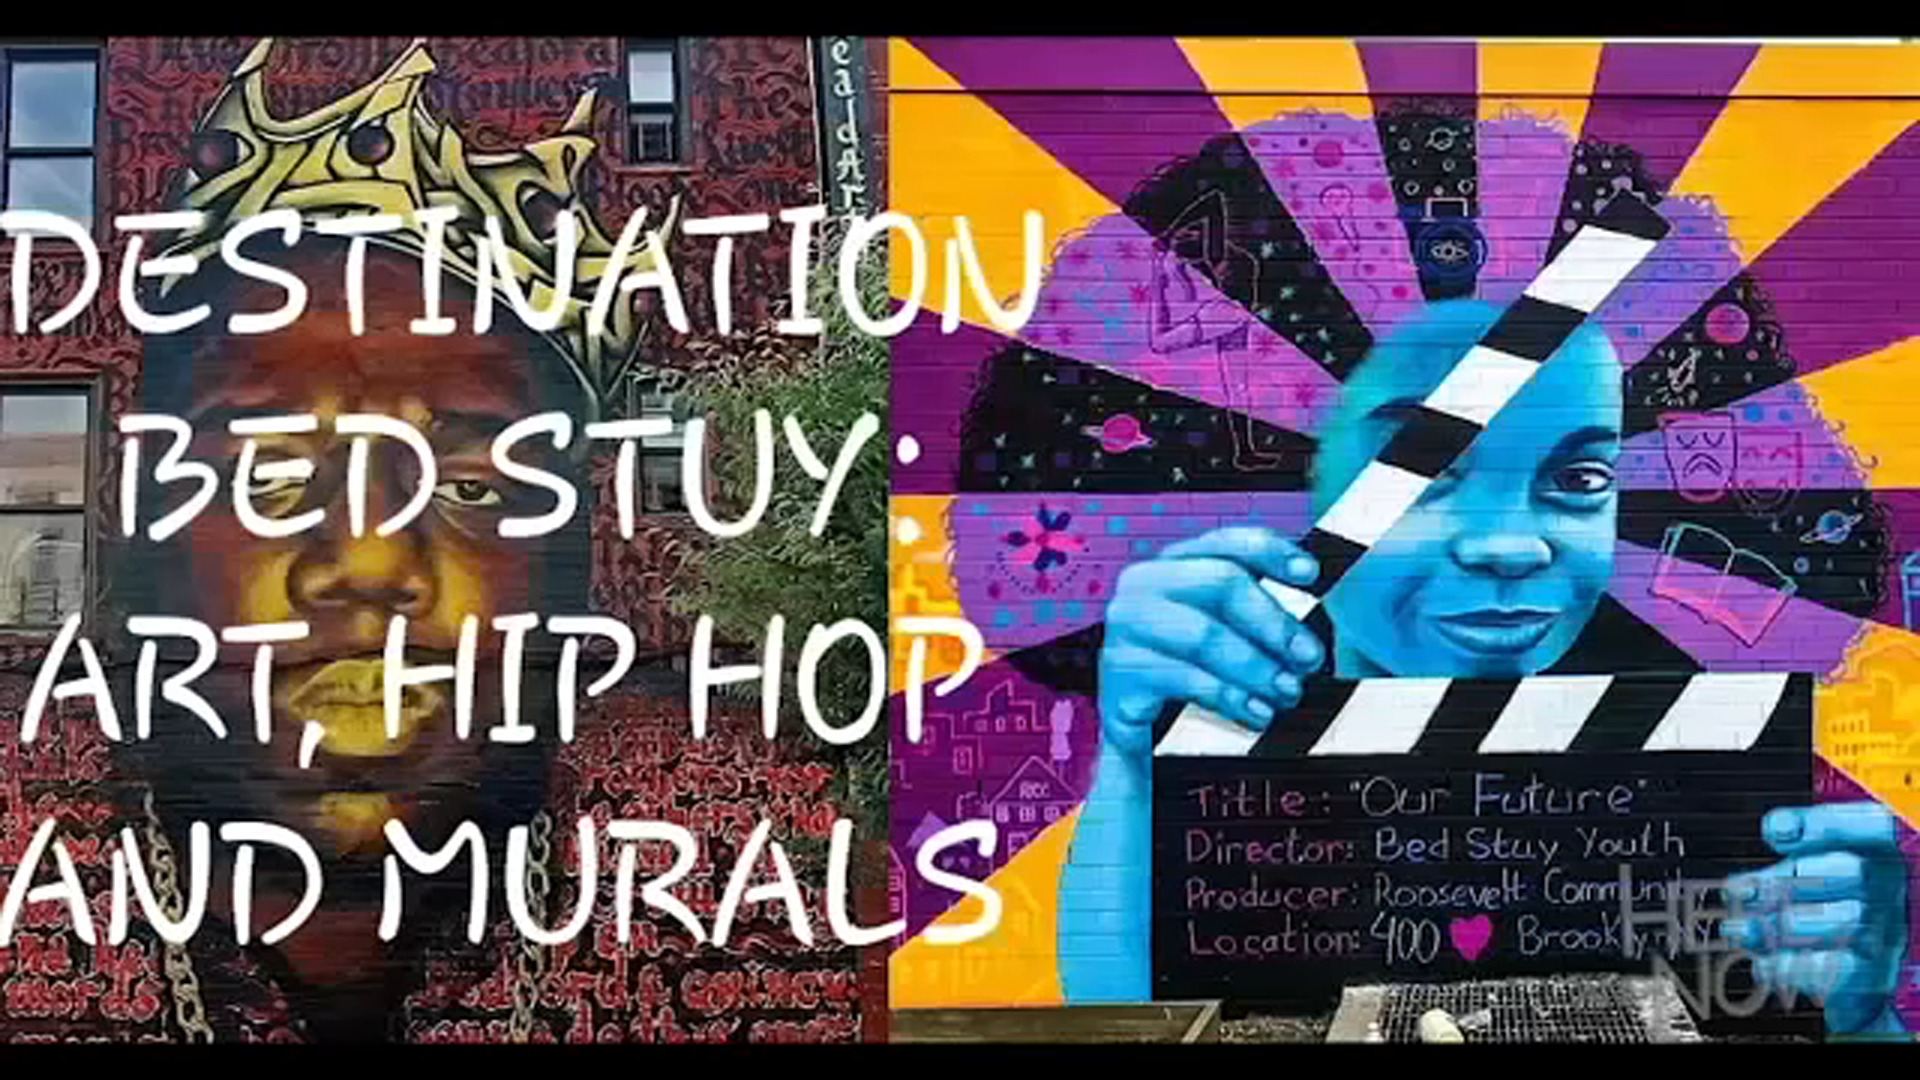 Destination Bed-Stuy, Art, Hip Hop and Murals explores the history of Brooklyns graffiti art and its impact on street murals.